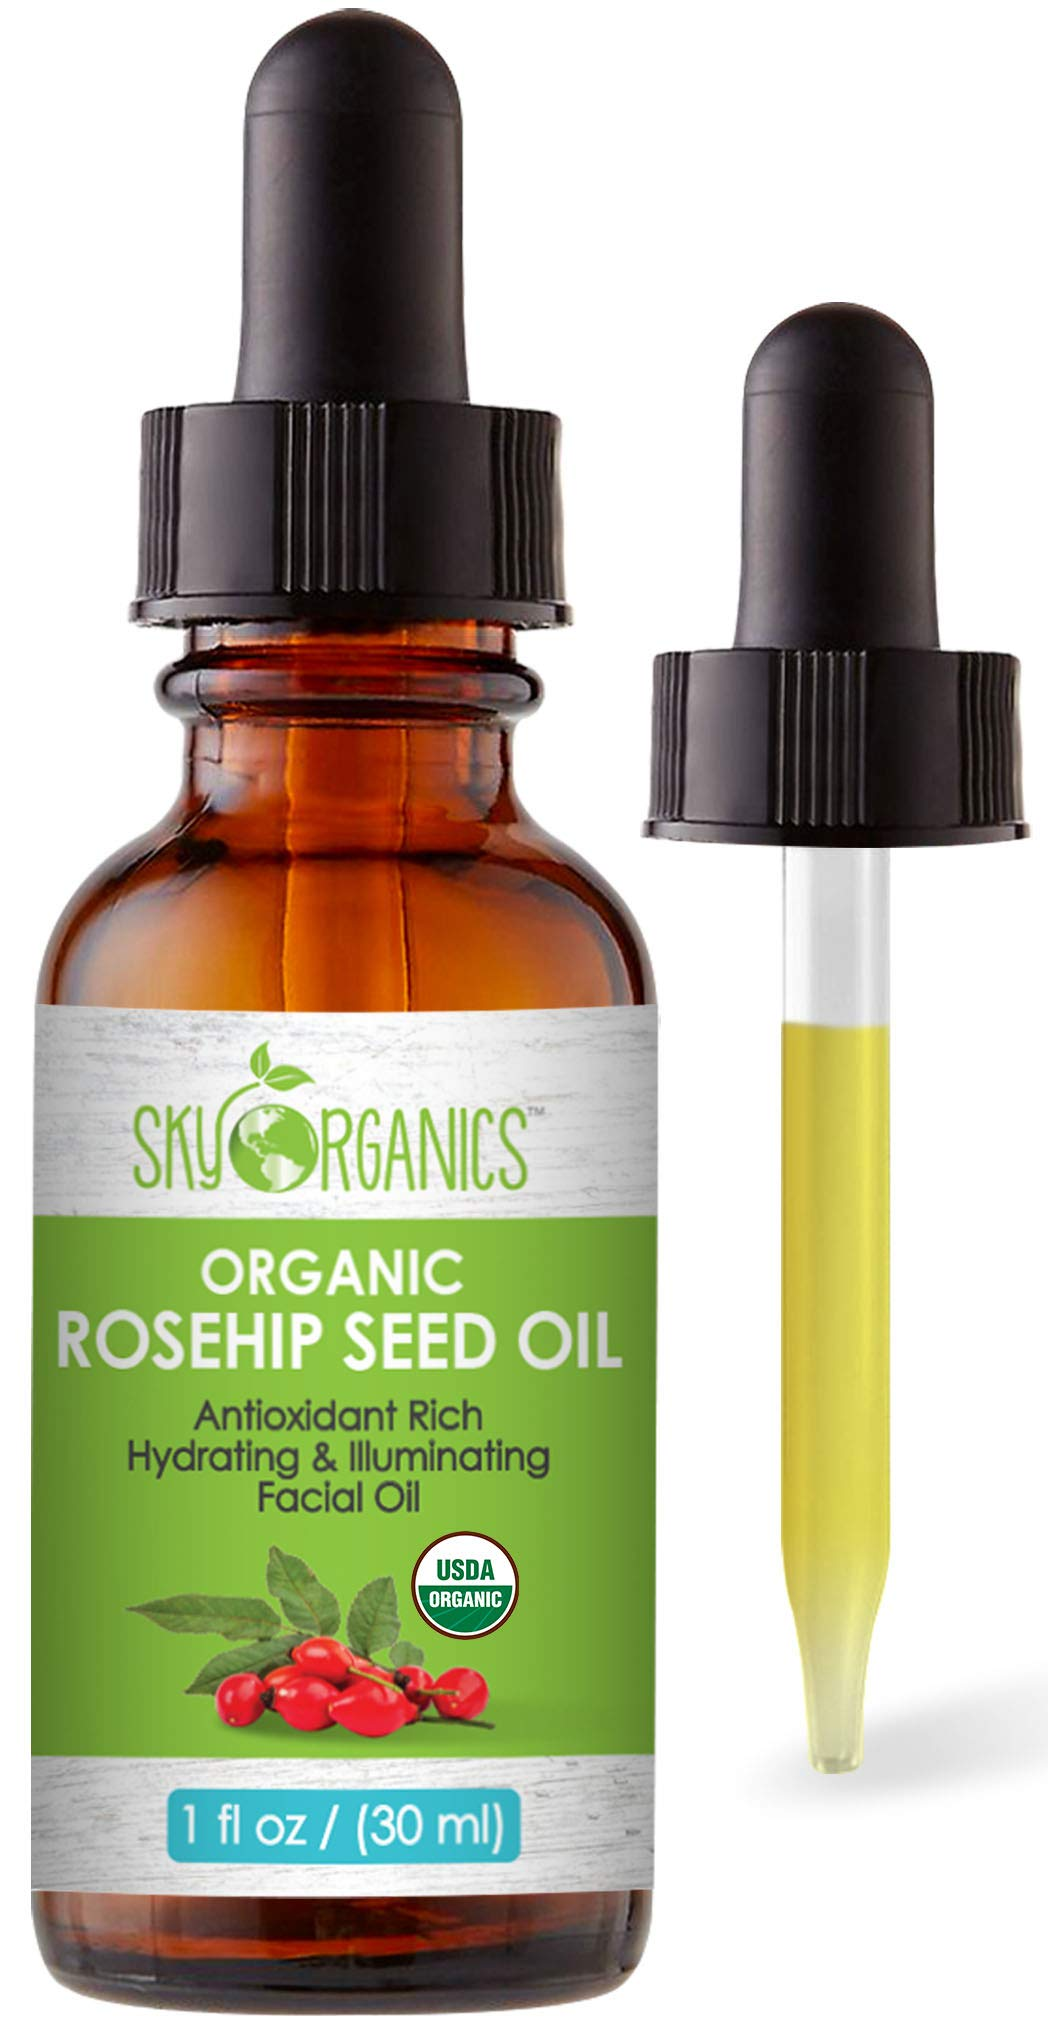 Organic Rosehip Oil by Sky Organics, Cold-Pressed Cruelty-Free Rosehip Seed Oil, Anti-aging Face Oil, Antioxidant Face Oil, 100% Pure Anti-Aging Rosehip Seed Oil for Radiant Skin, Hair and Acne (1oz)